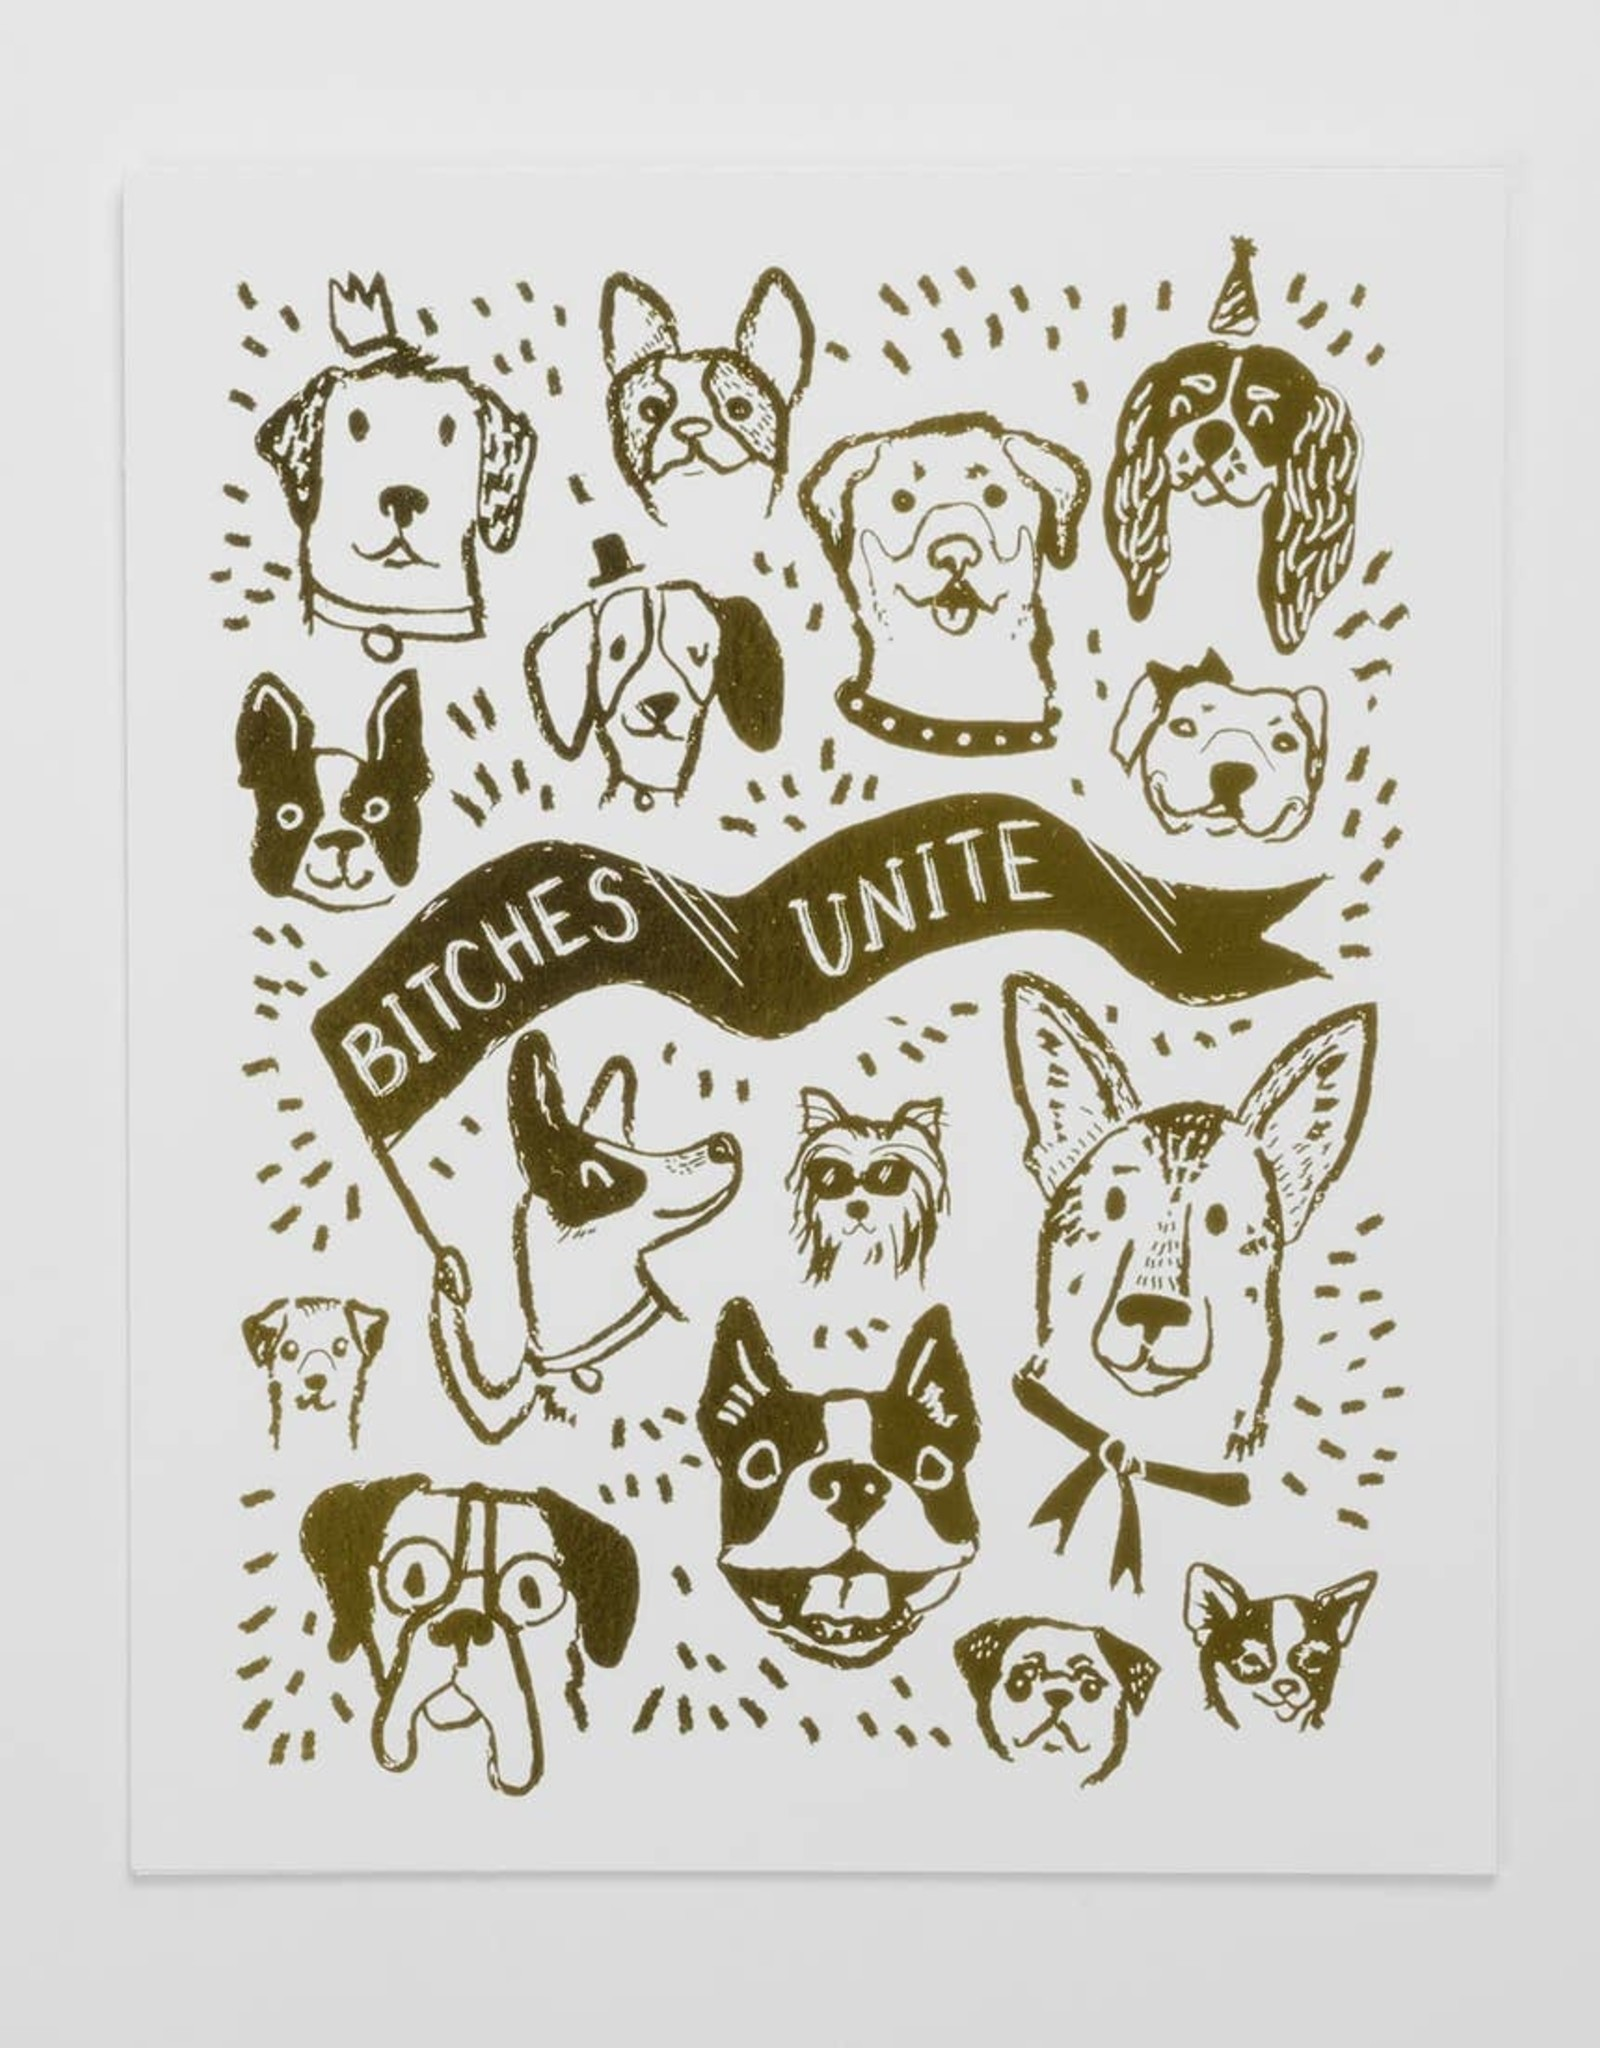 Bitches Unite 8x10 print